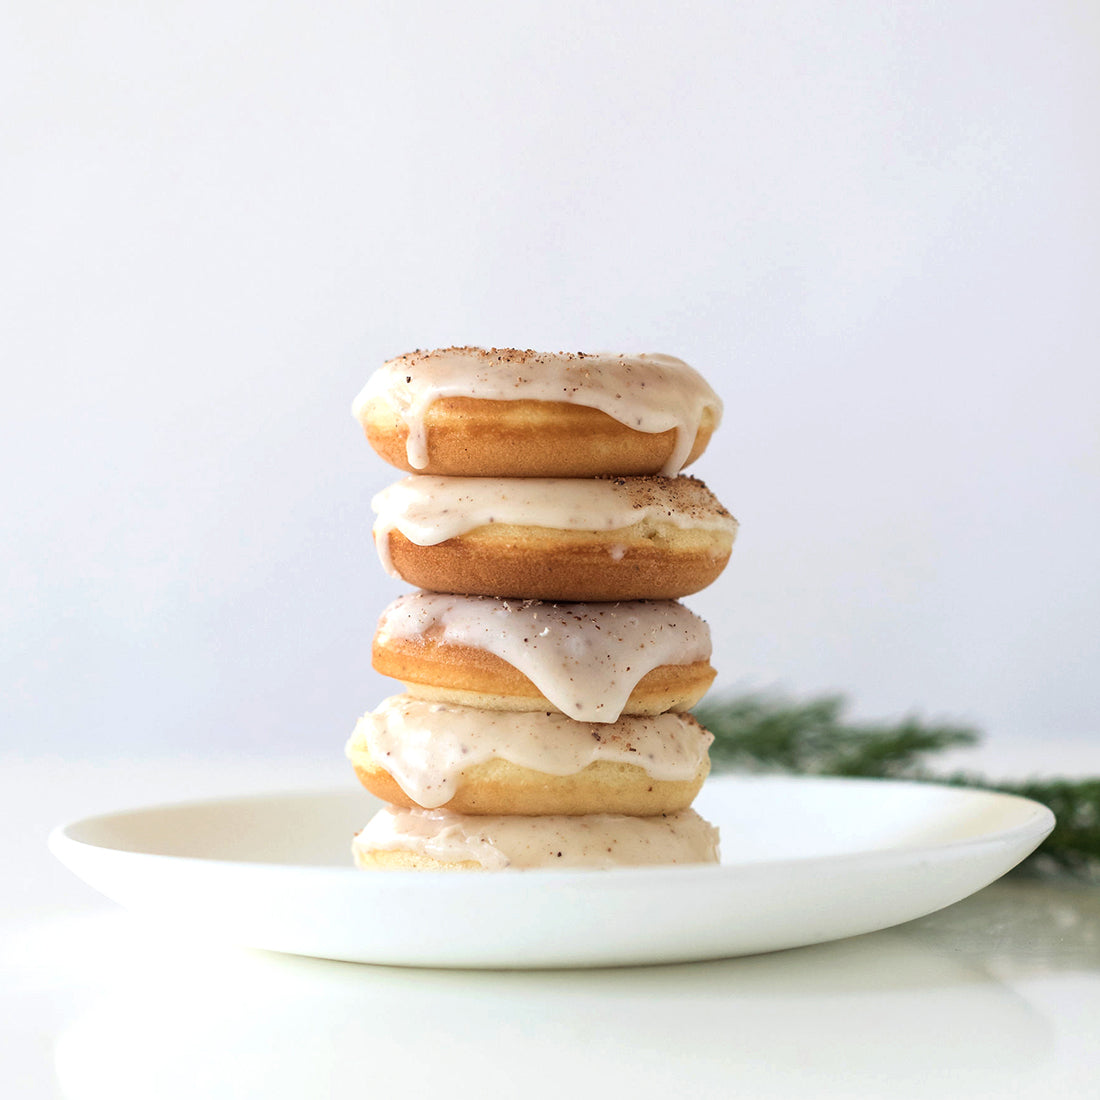 Image of side of five Miss Jones Baking Co Easy Holiday Eggnog Mini Donuts stacked on a white plate